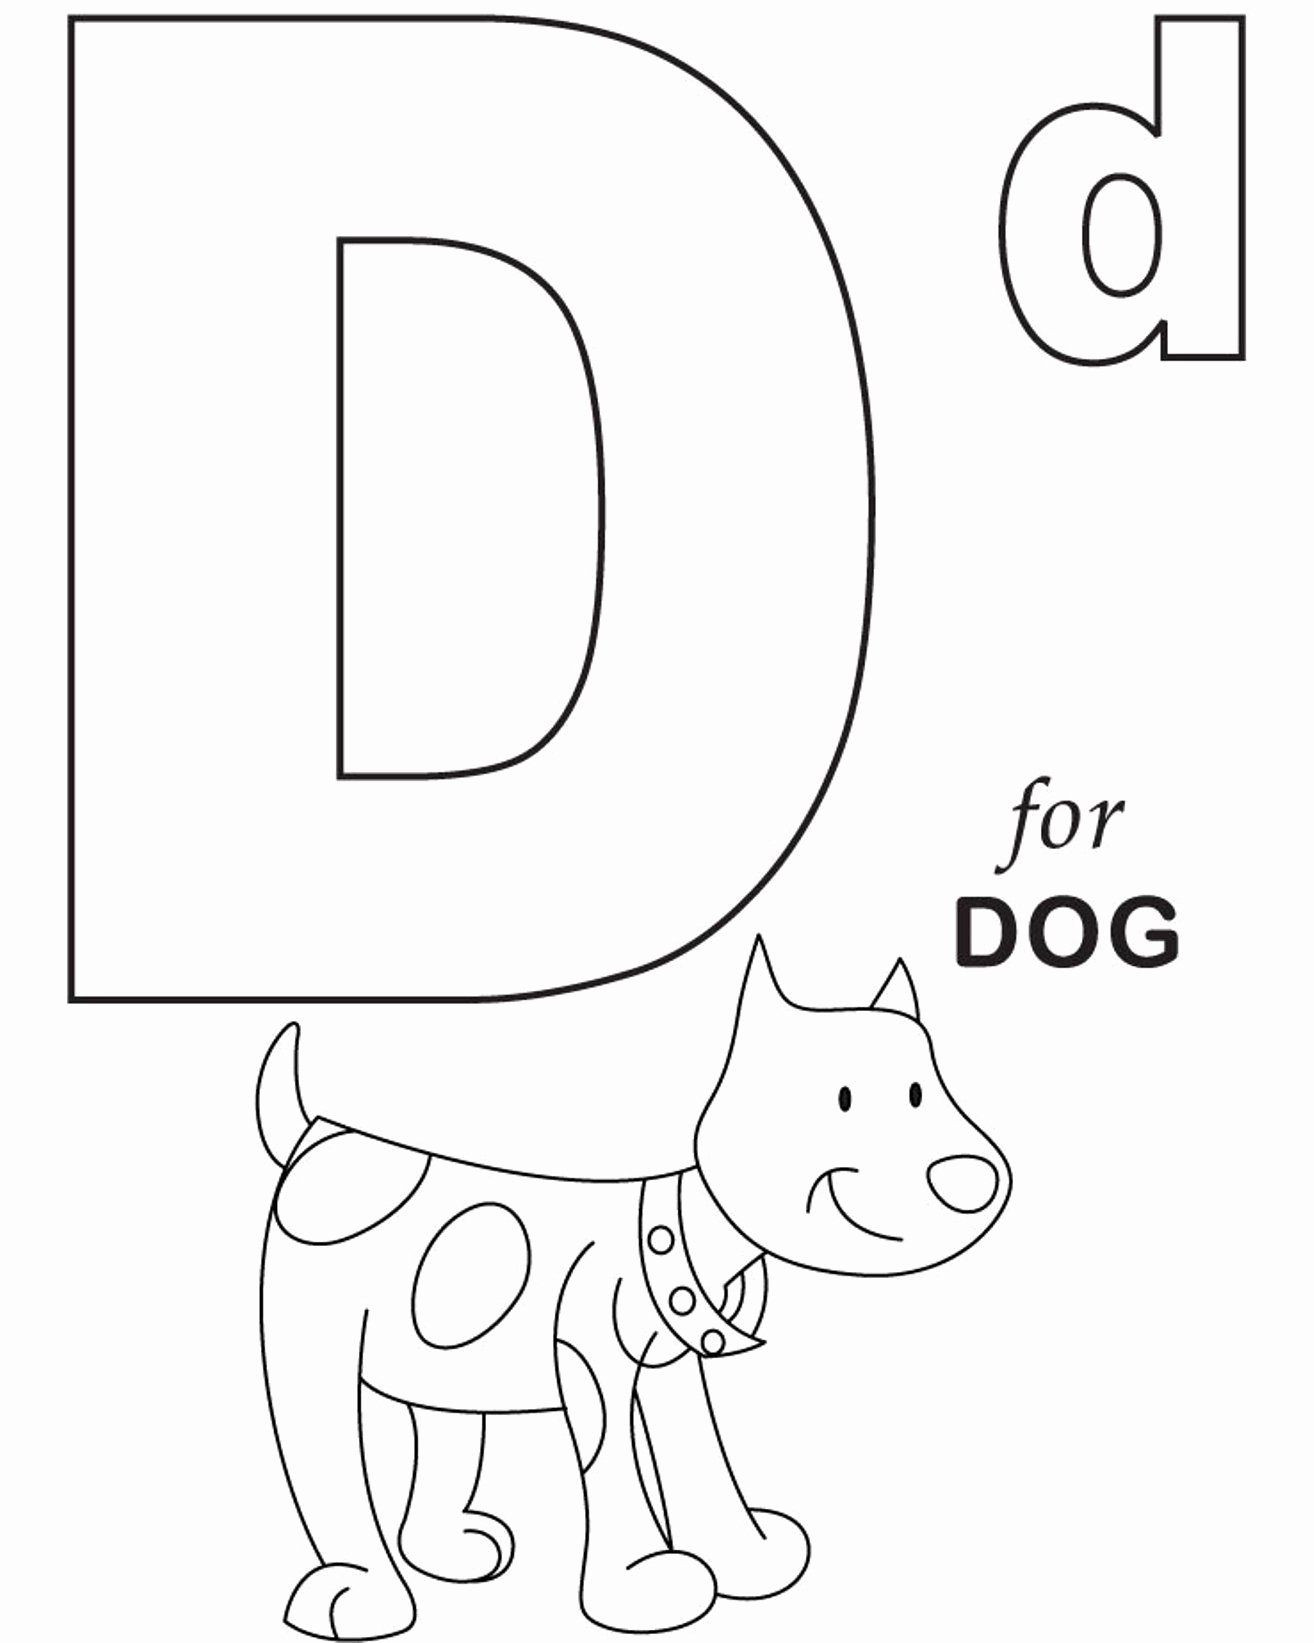 Alphabet Coloring Worksheets for Preschoolers Ideas Coloring Alphabet for Dog Printable Letter Preschool